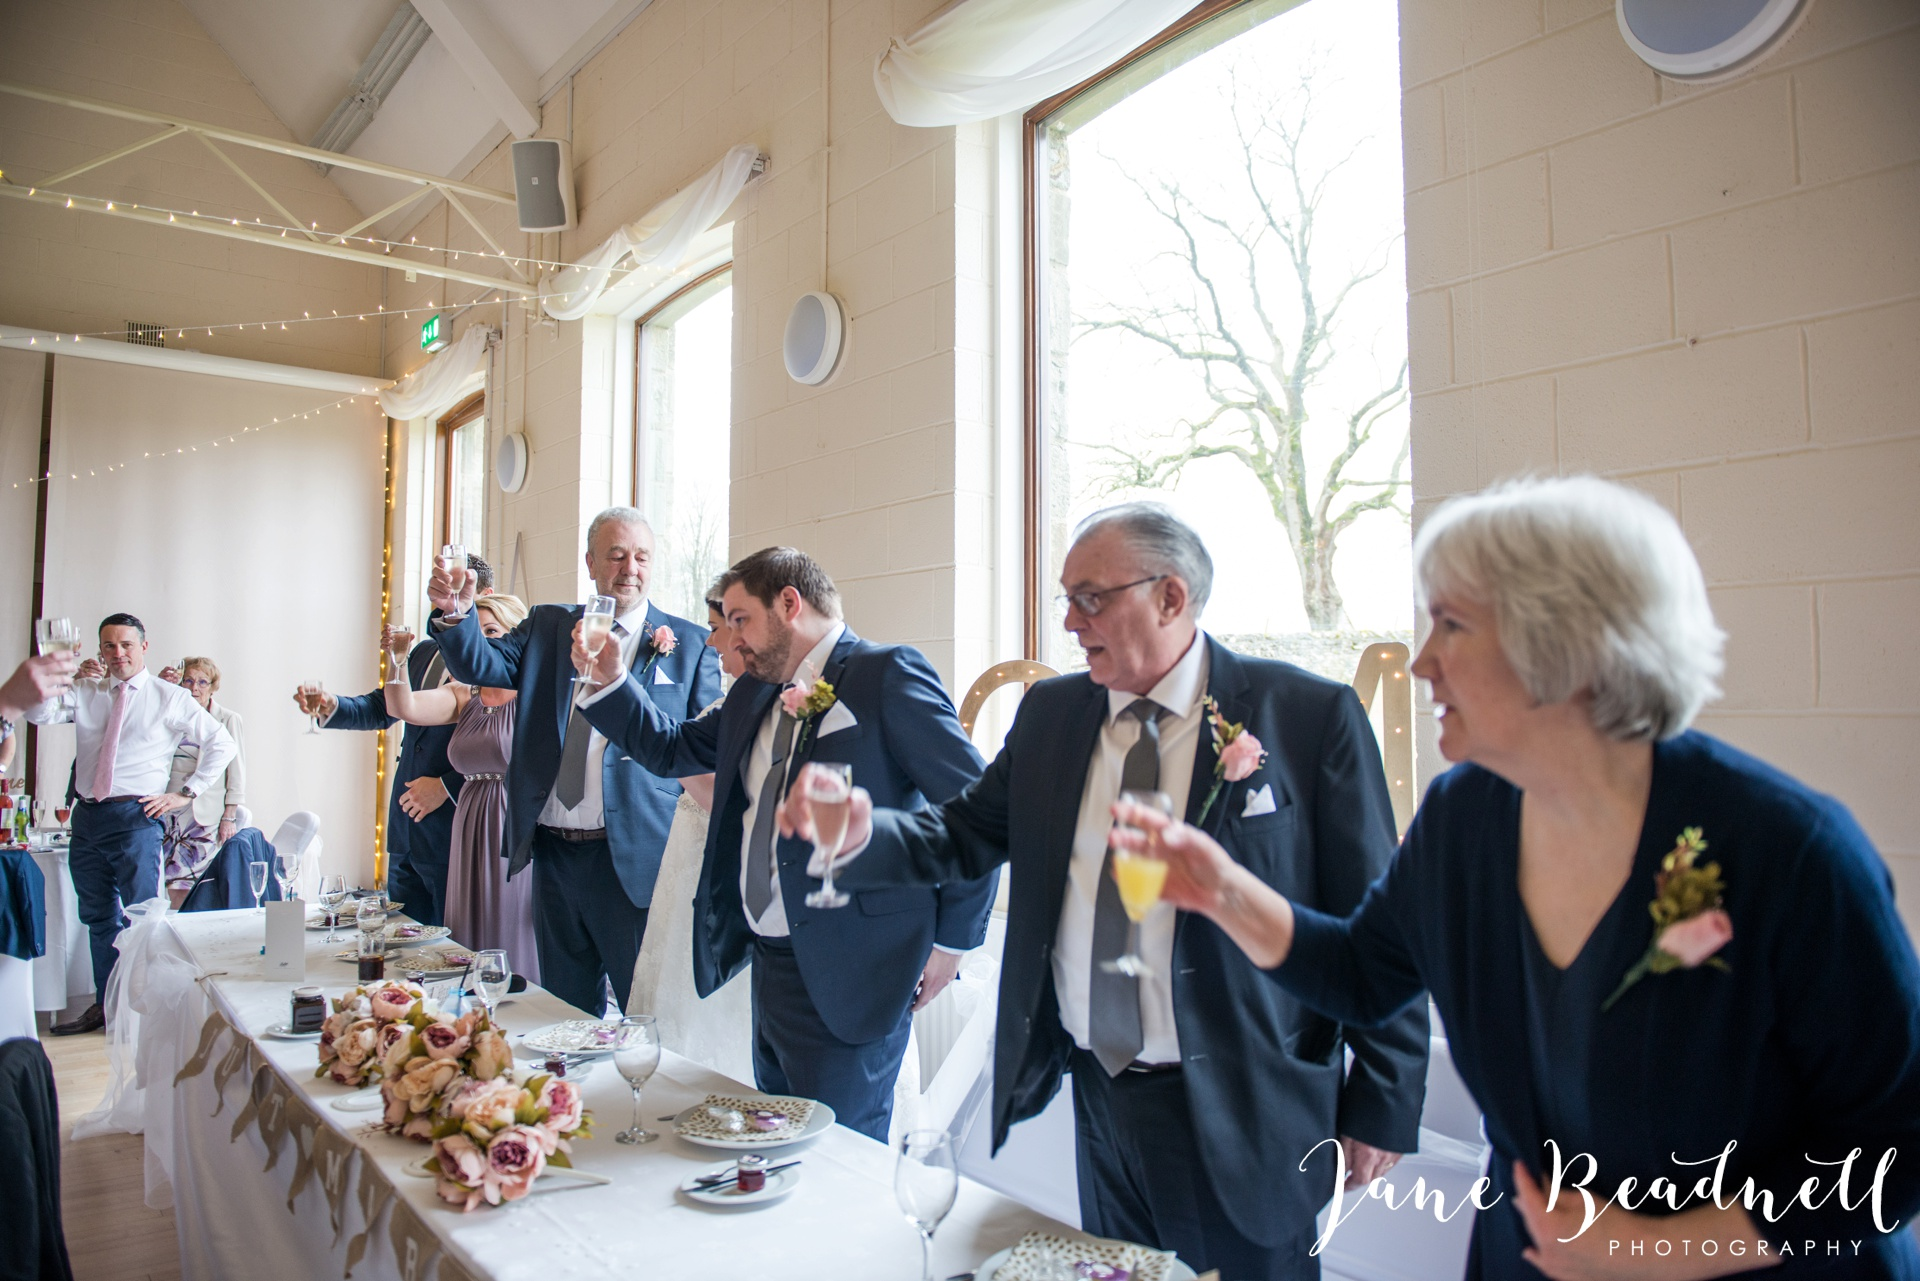 Cracoe Village Hall Wedding Photography by Jane Beadnell Photography fine art wedding photographer Yorkshire_0068